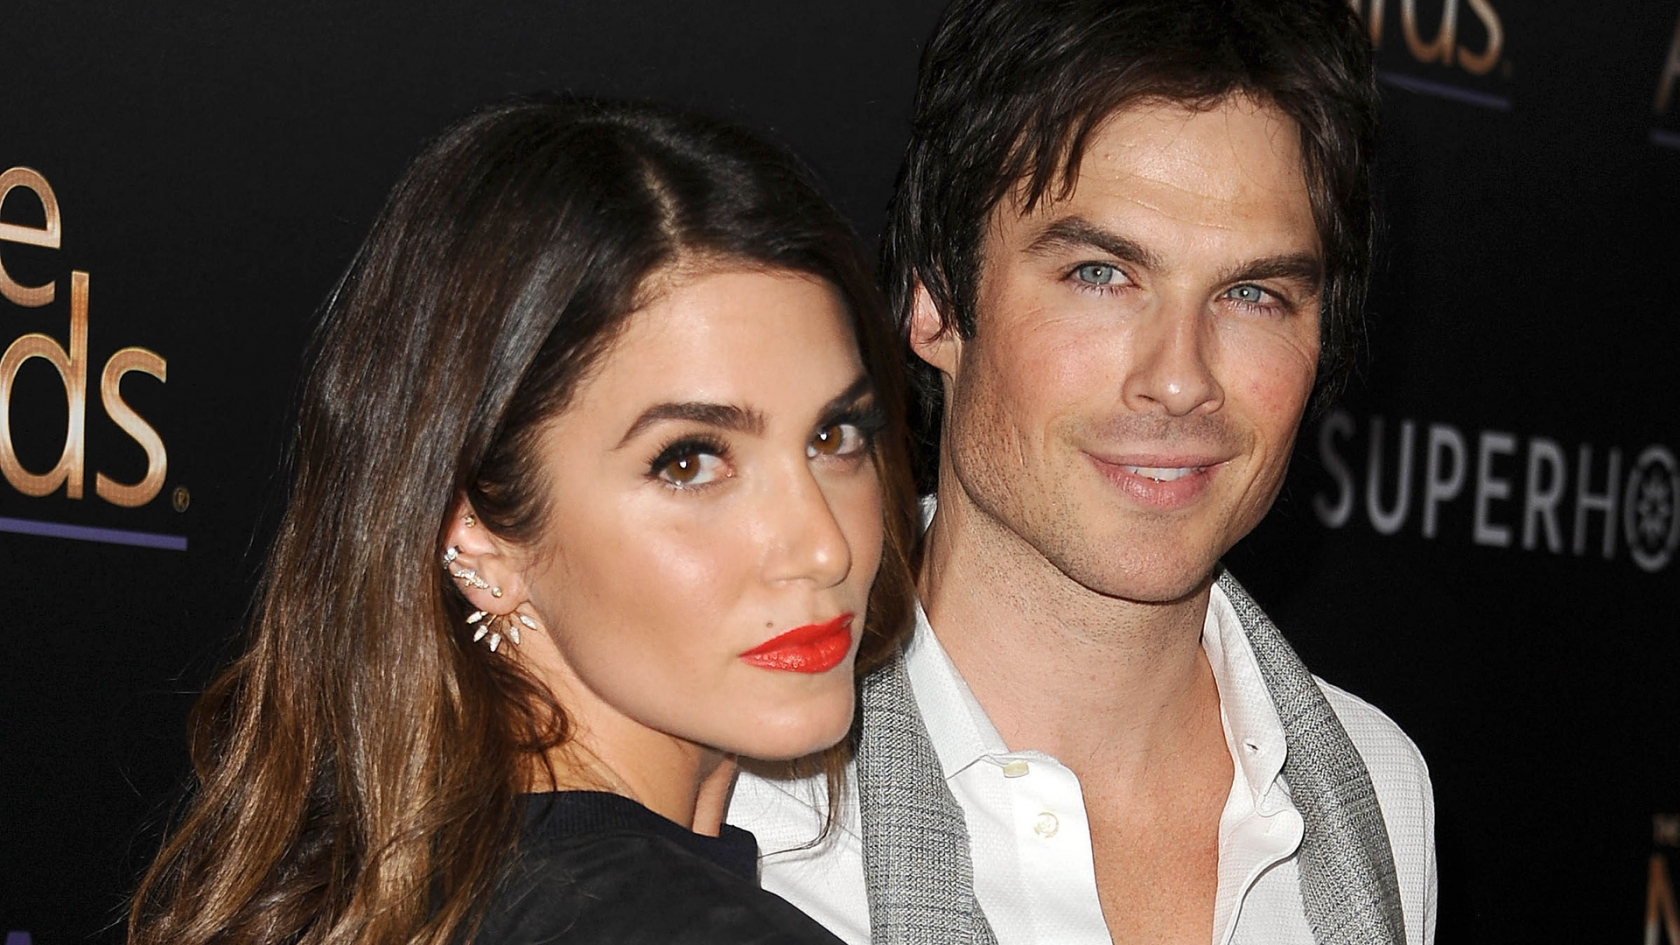 Nikki Reed and Ian Somerhalder for 1680 x 945 HDTV resolution